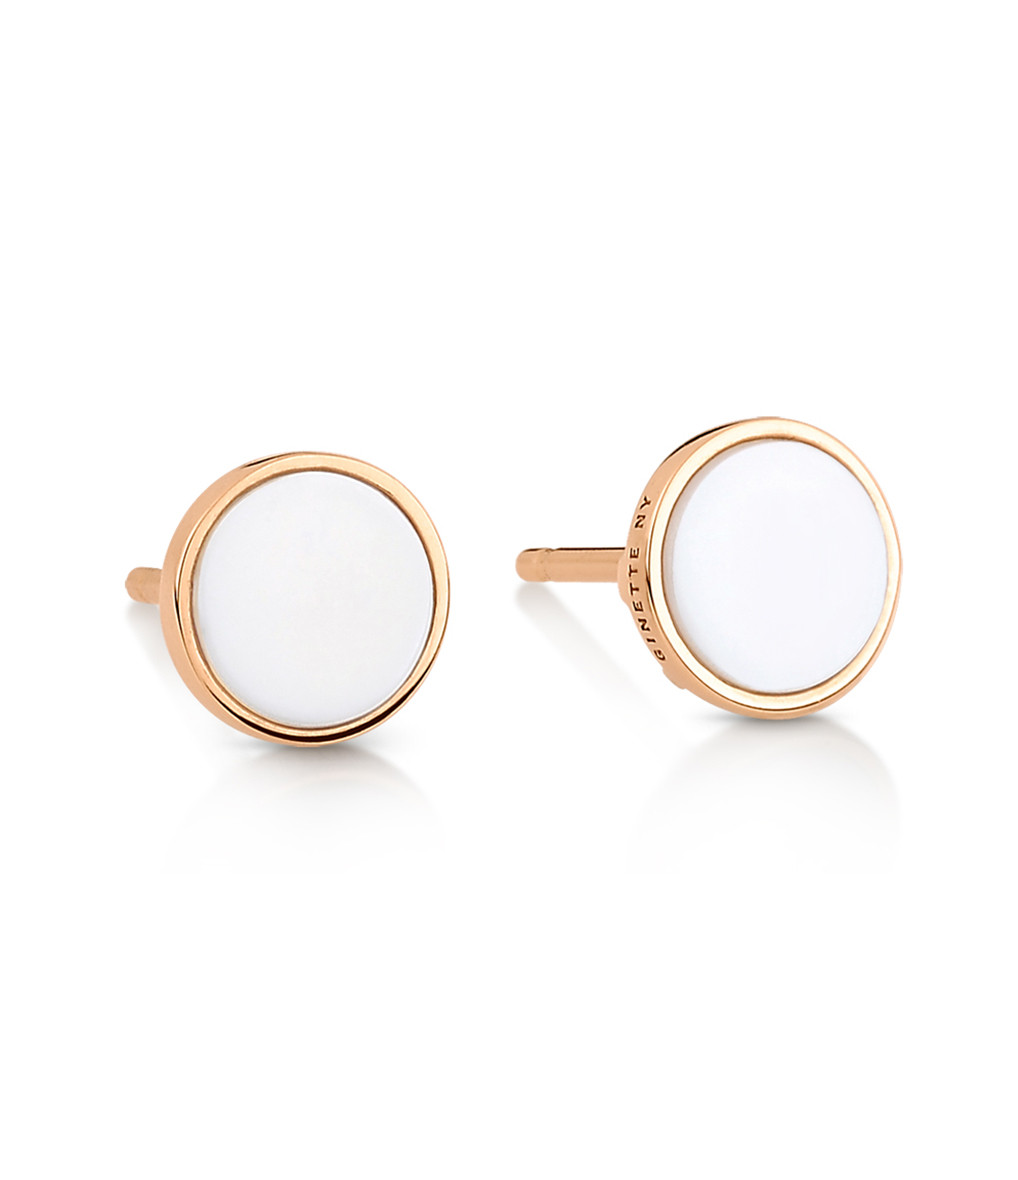 GINETTE NY - Boucles d'oreilles Ever Disc Or Rose Agate Blanche